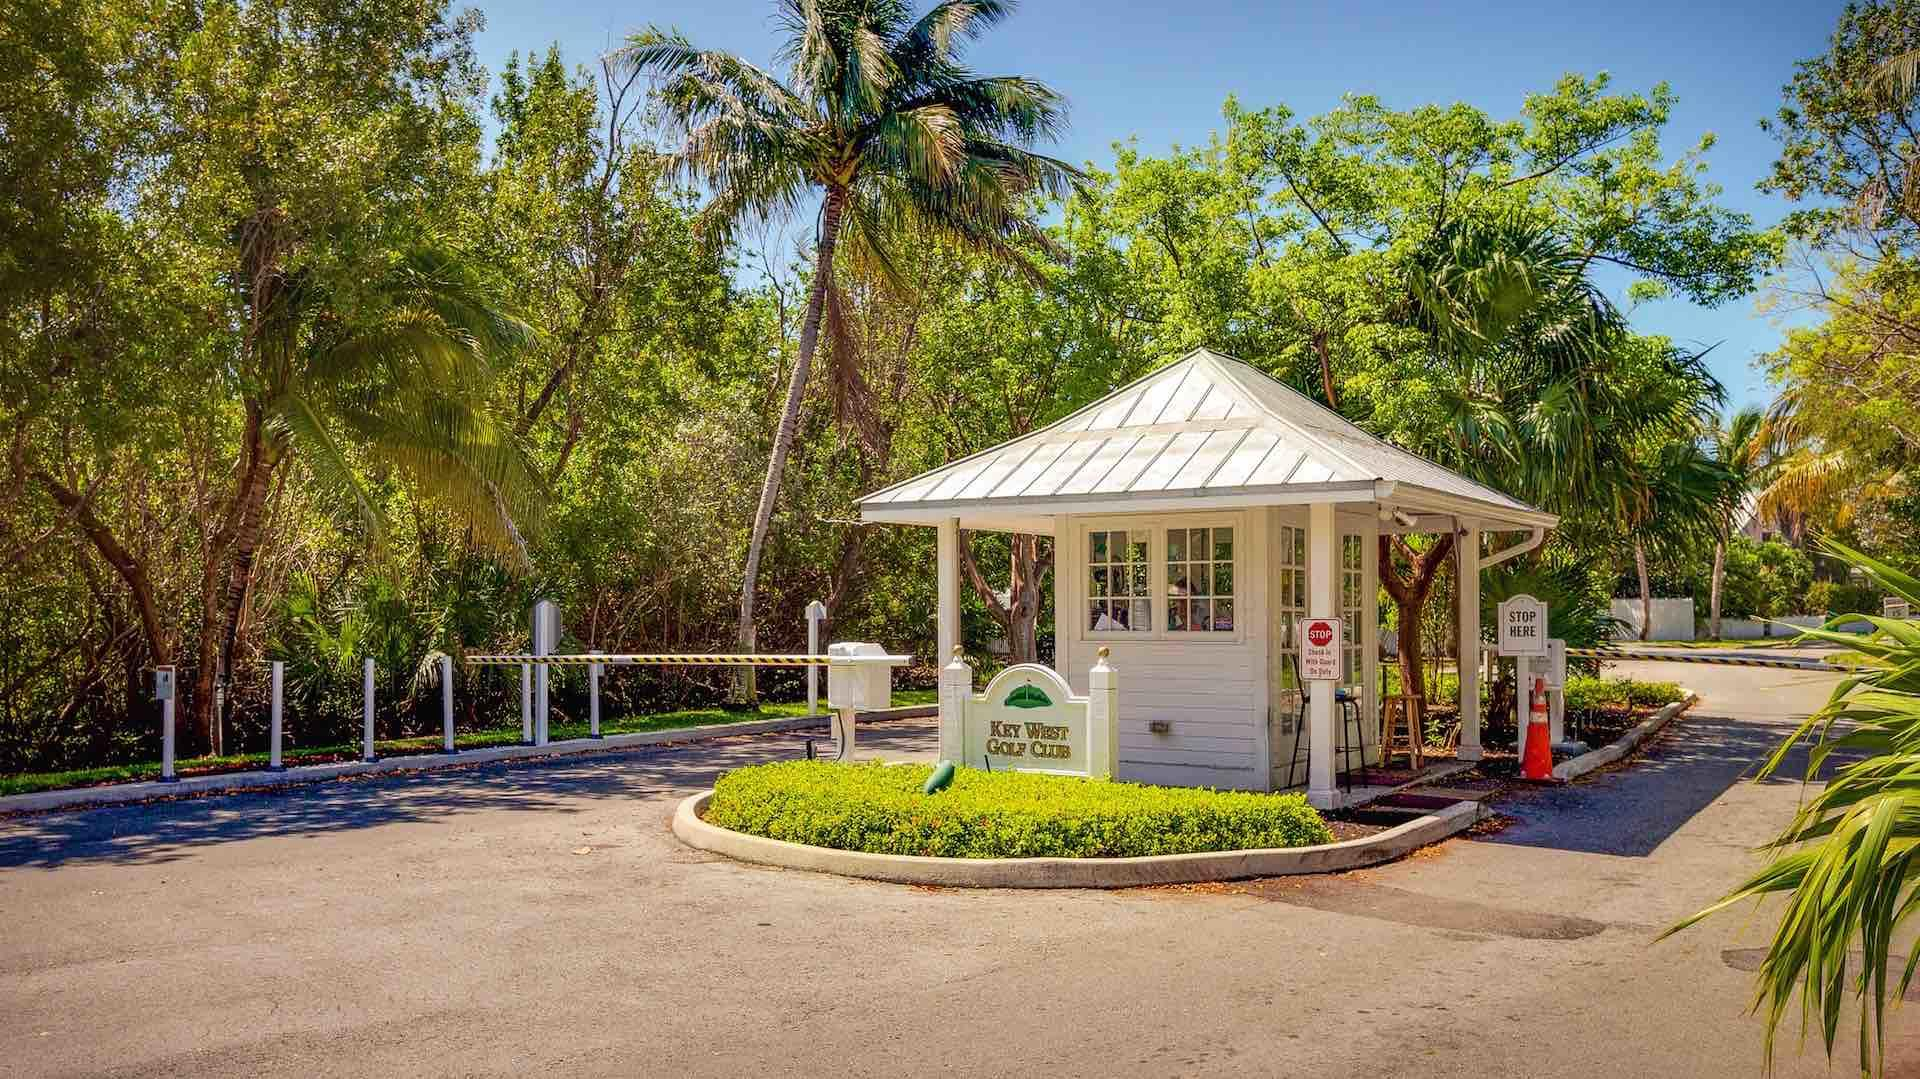 The gated community at the Key West Golf Club has 24 hour security...